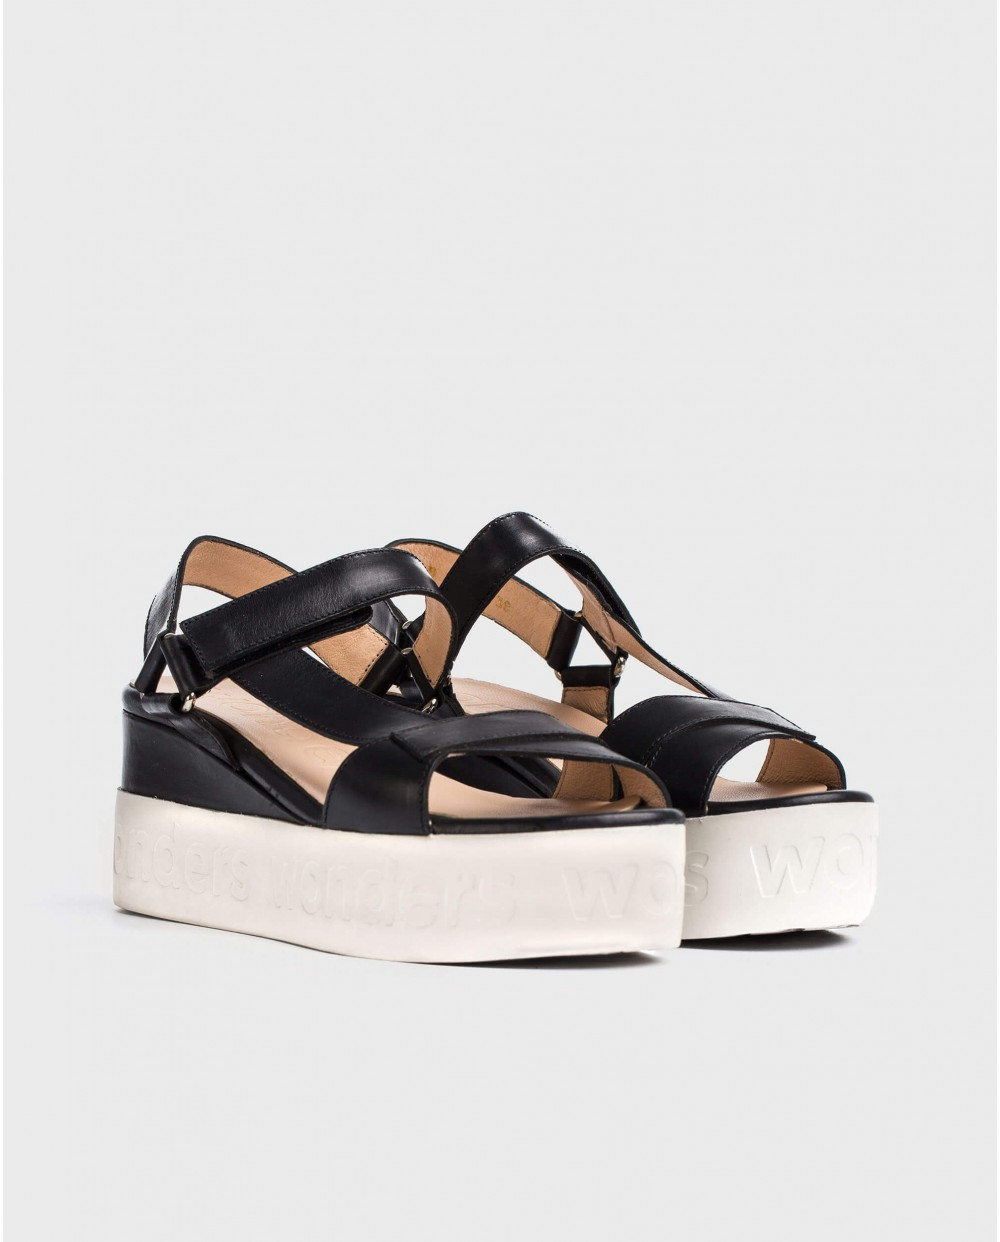 Wonders-Sandals-Sandal with Velcro strap